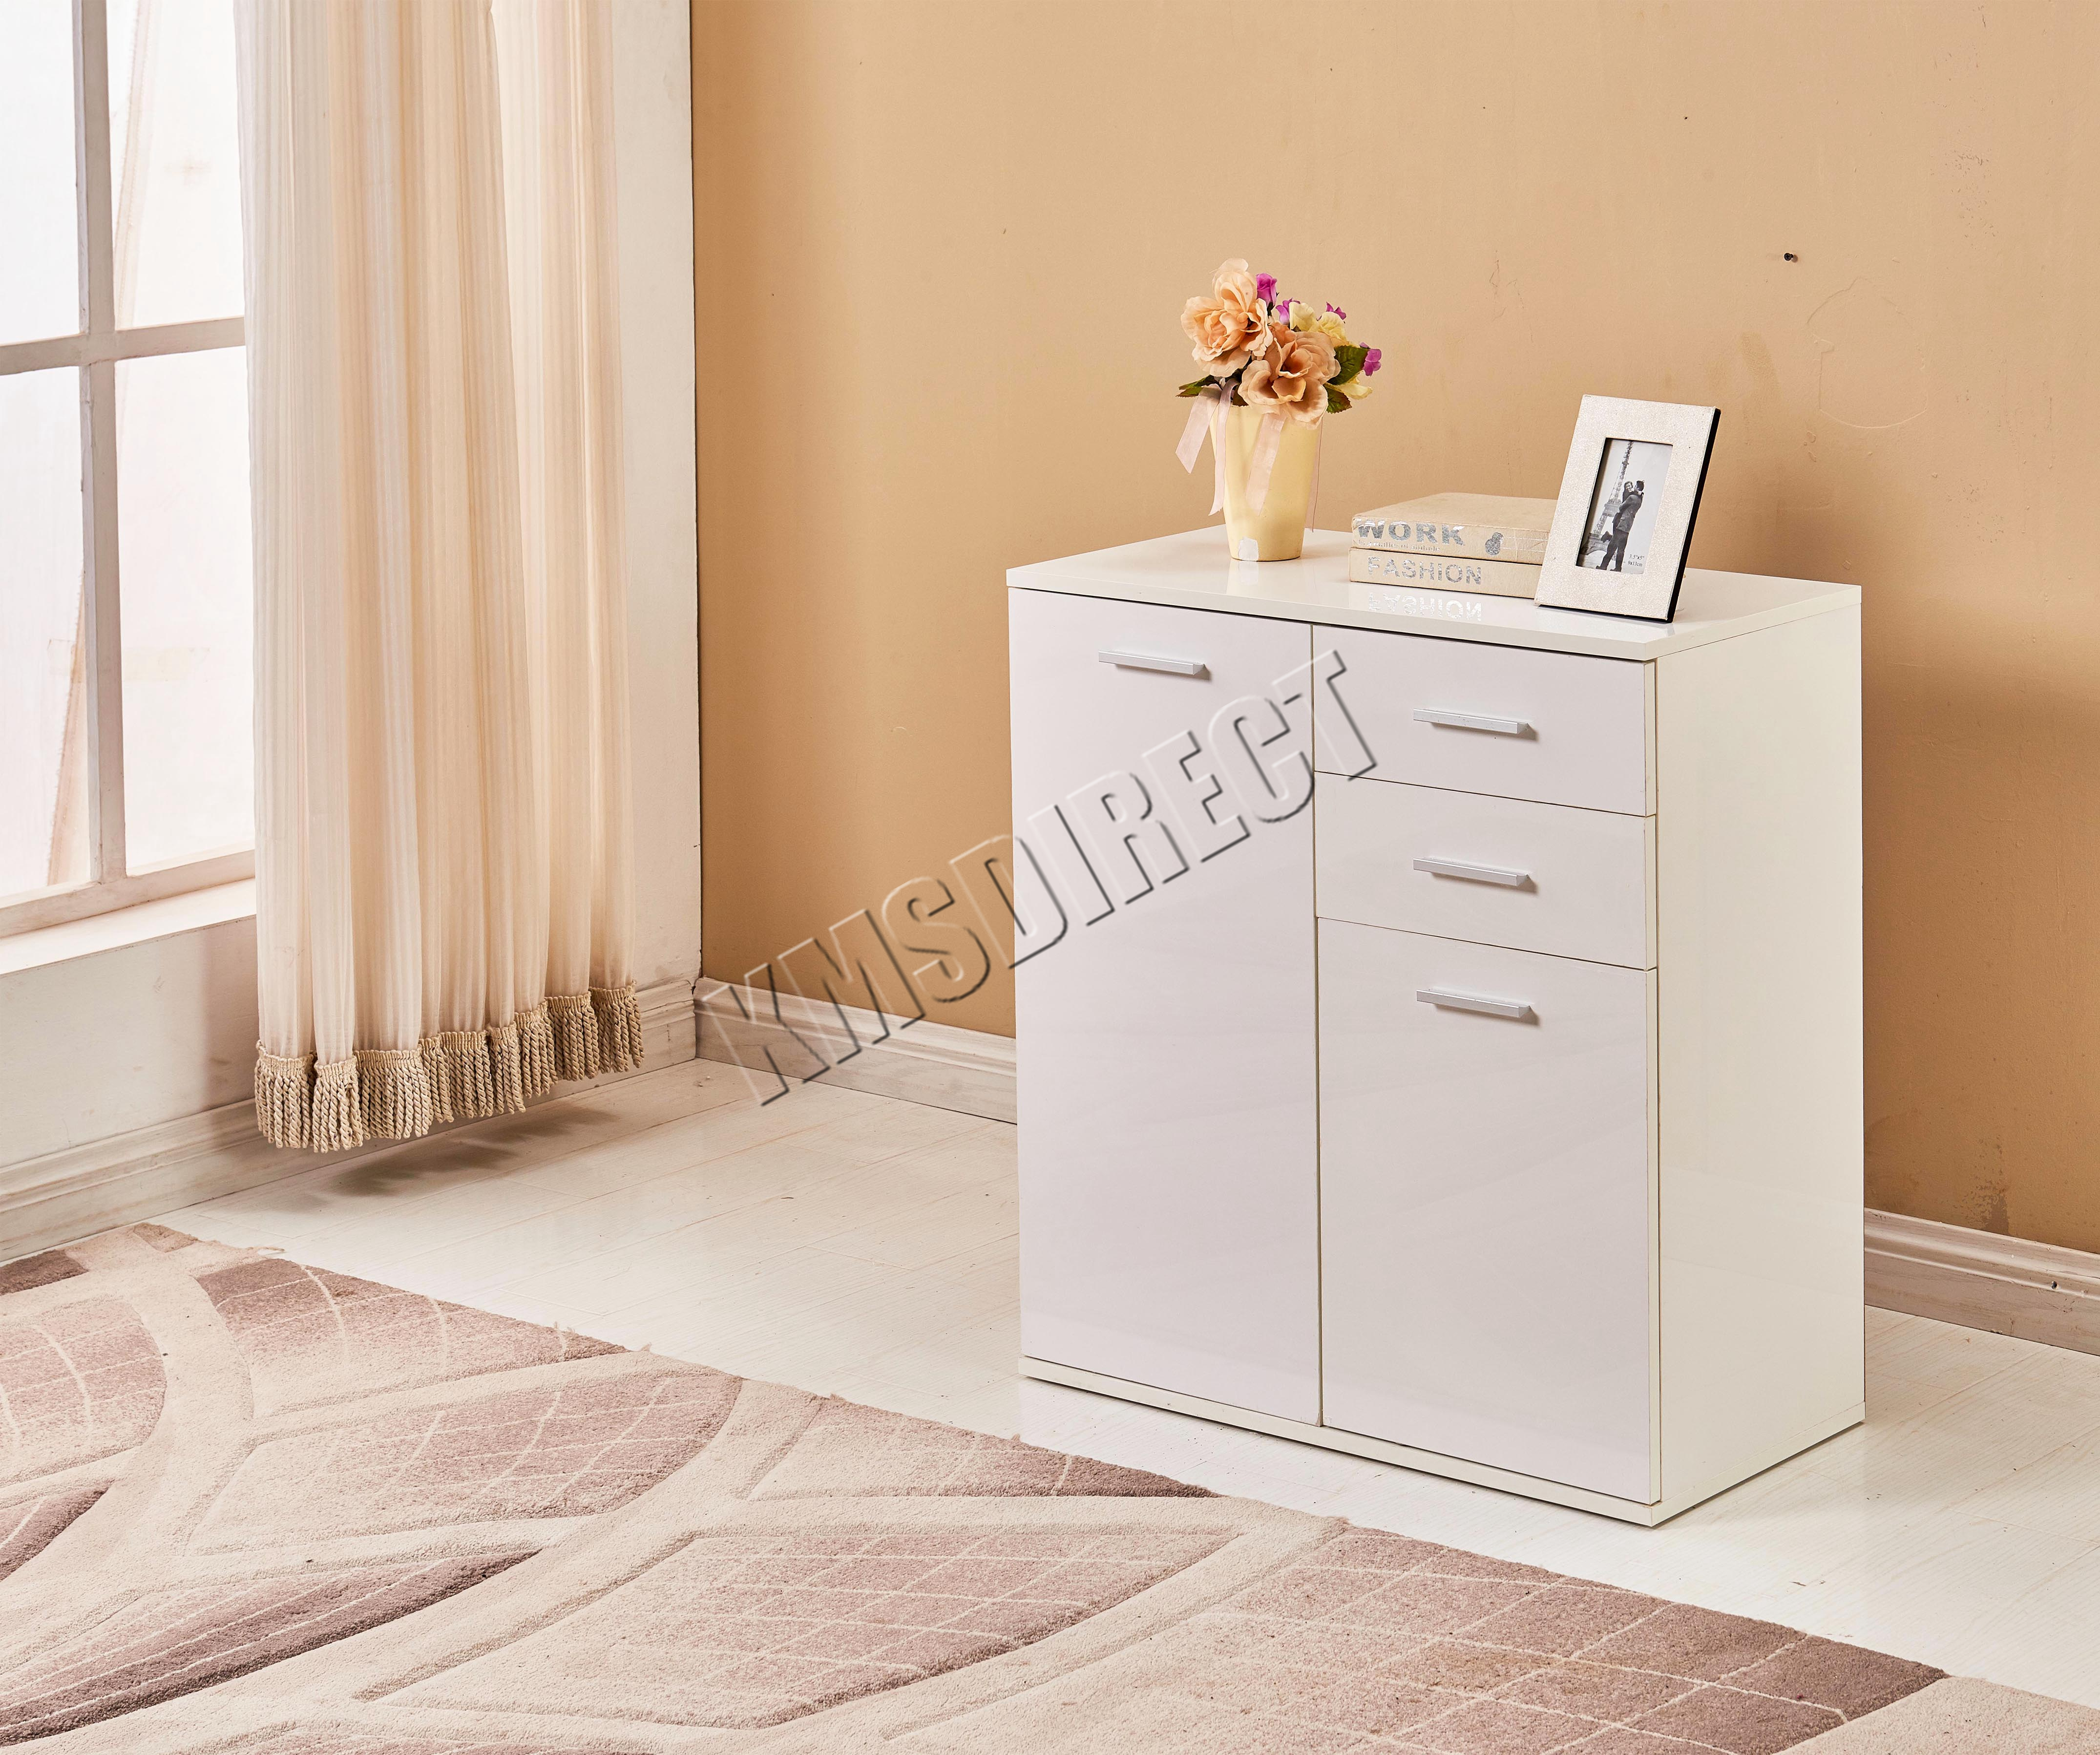 Mdf Kitchen Cabinets Price: WestWood White High Gloss Cabinet Unit Sideboard 2 Drawers